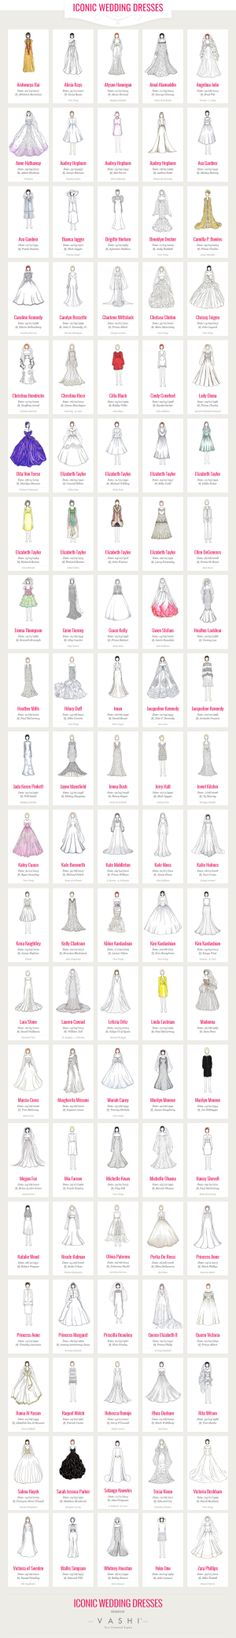 Thanks to Vashi, you can see illustrations of the most iconic (and beautiful!) wedding dresses ever.